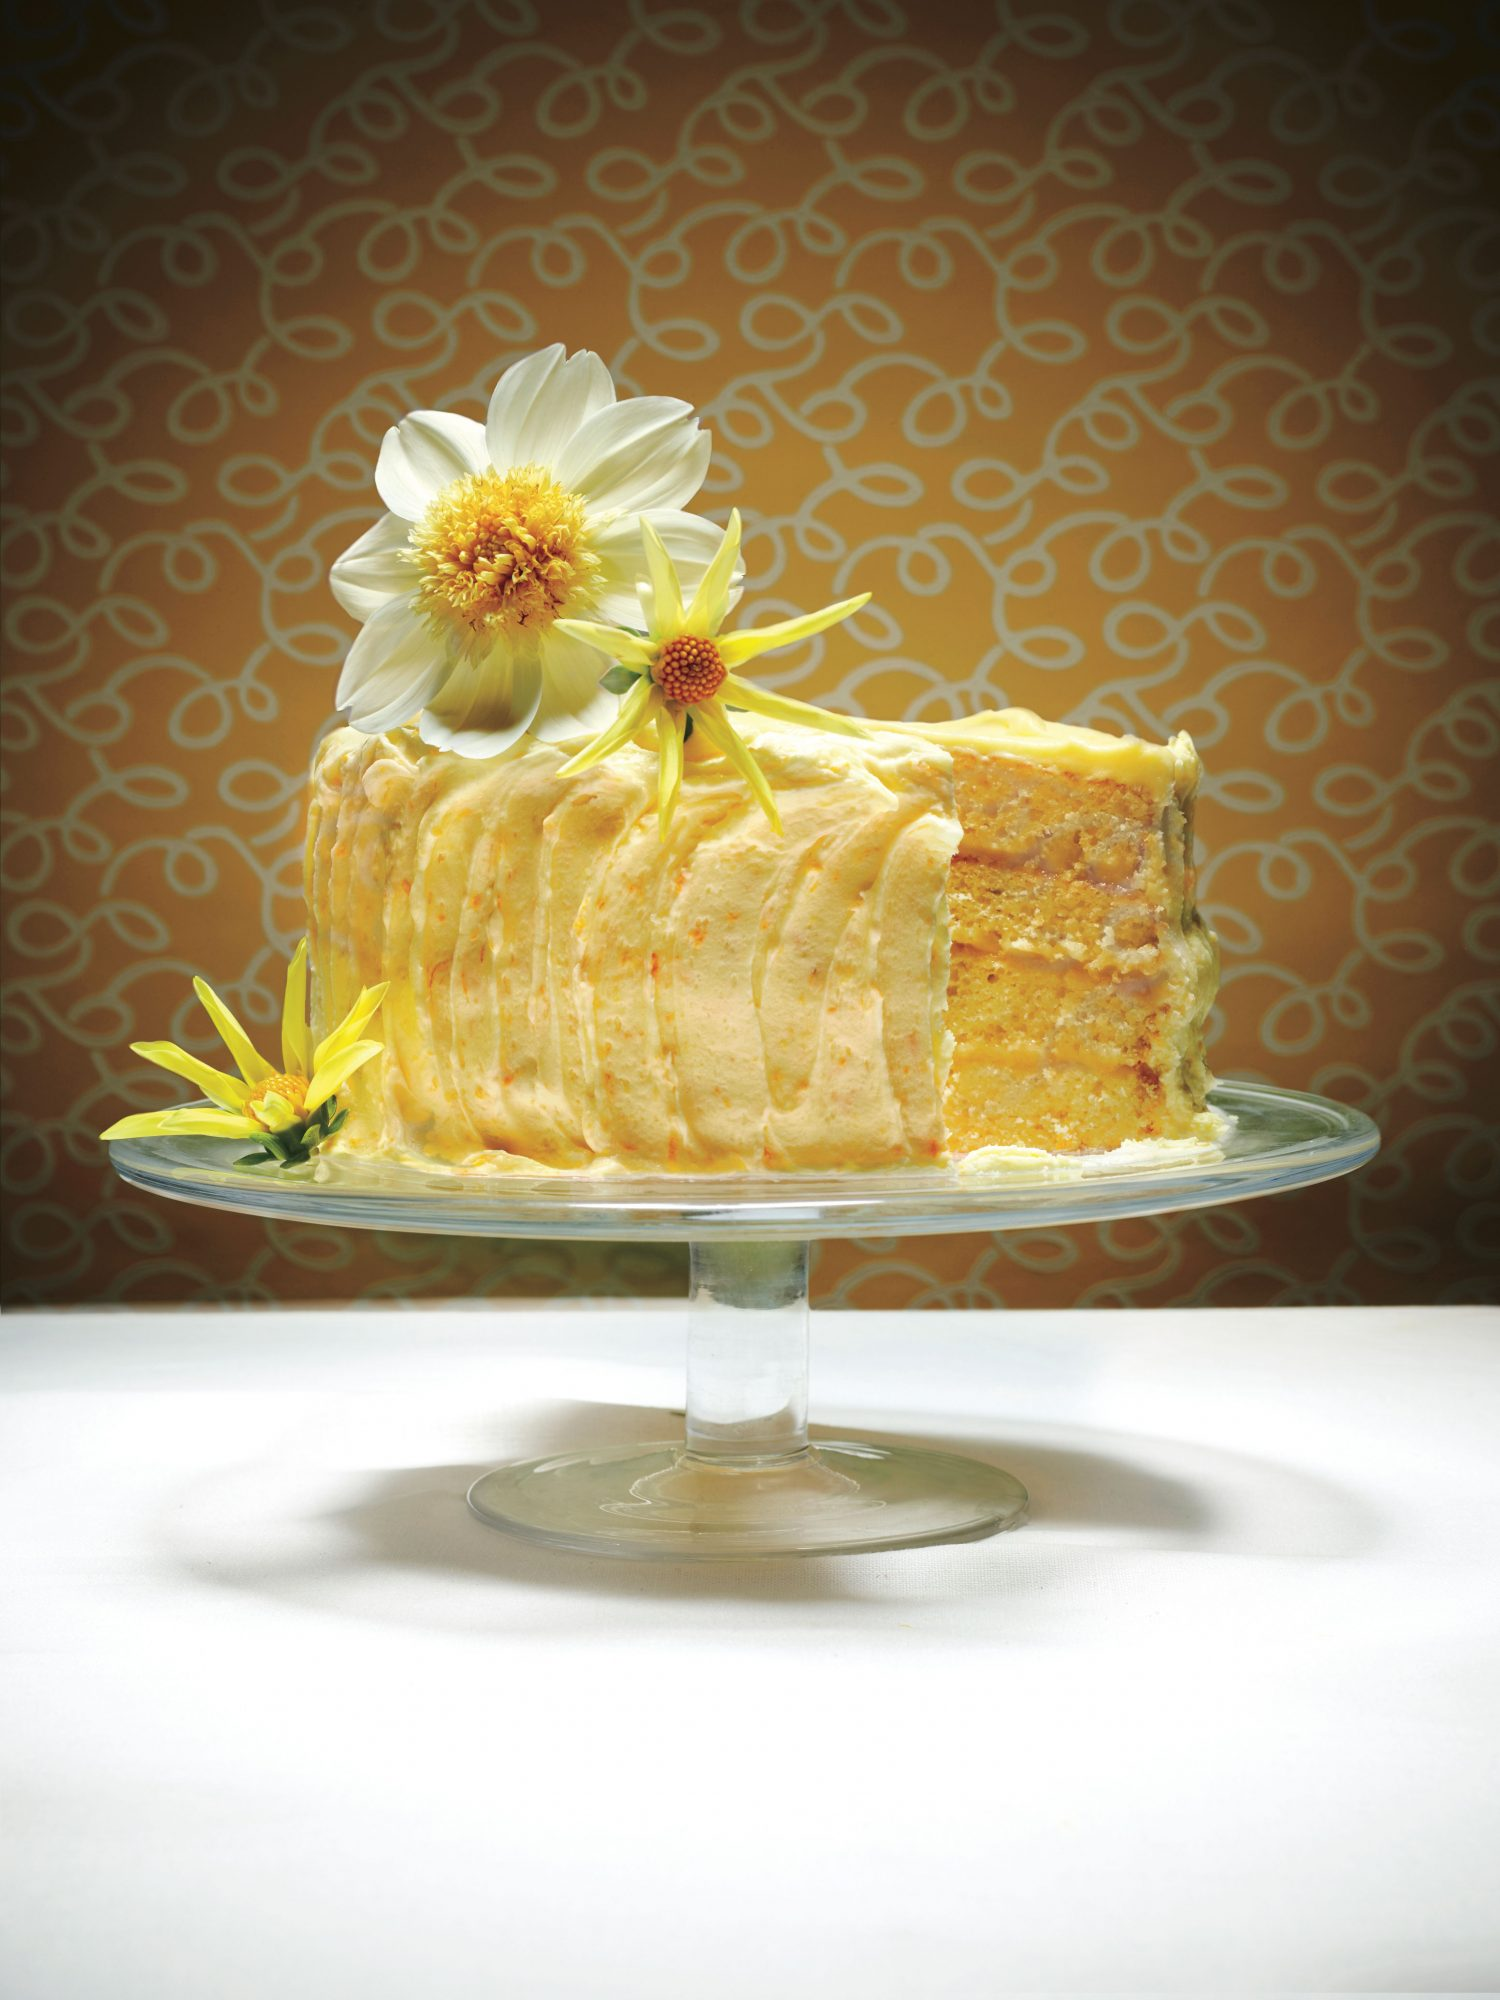 The Most Beautiful Cakes We\'re Planning to Bake in 2018 - Southern ...